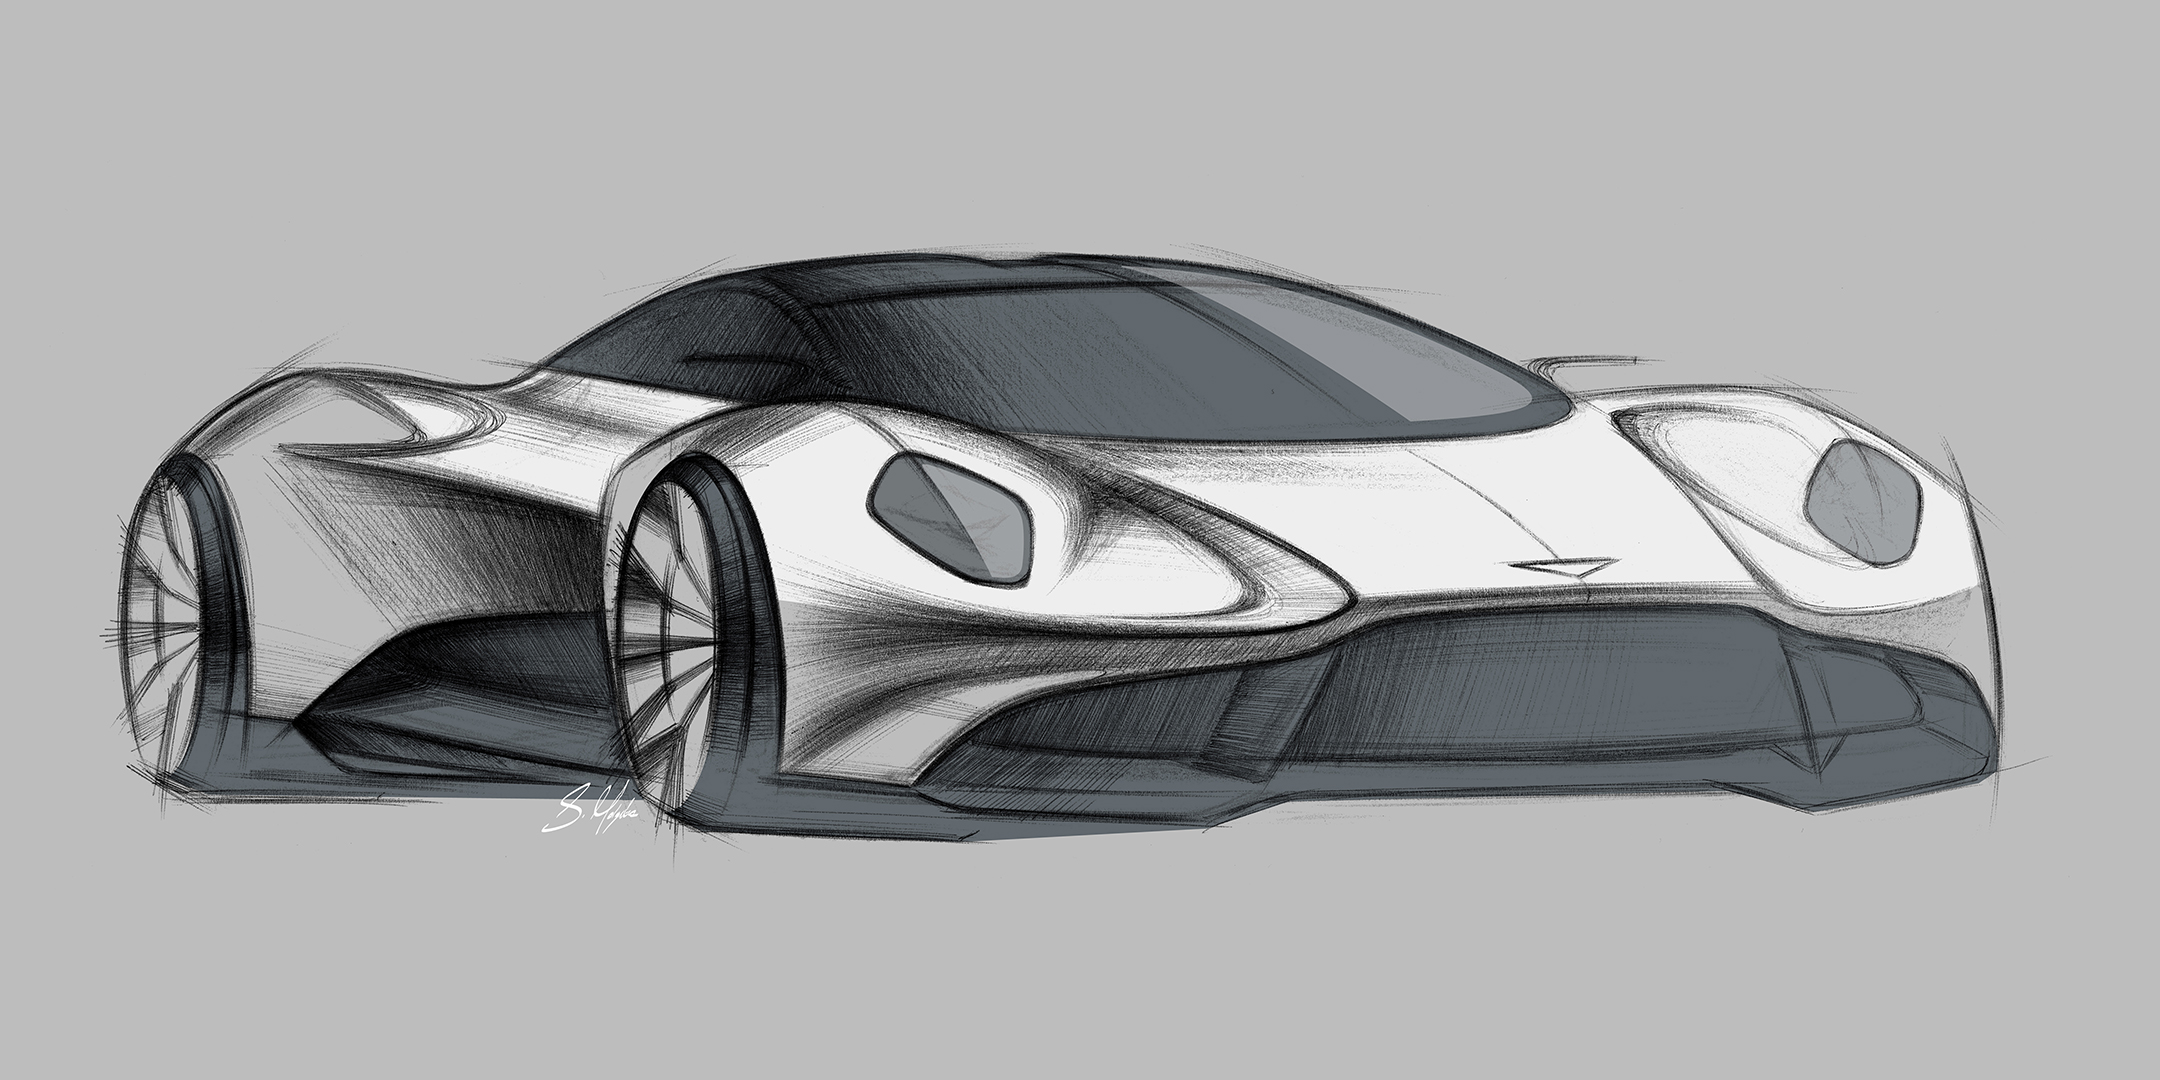 Aston Martin Vanquish Vision Concept - 2019 - front side-face / profil - sketch design by Sam Holgate